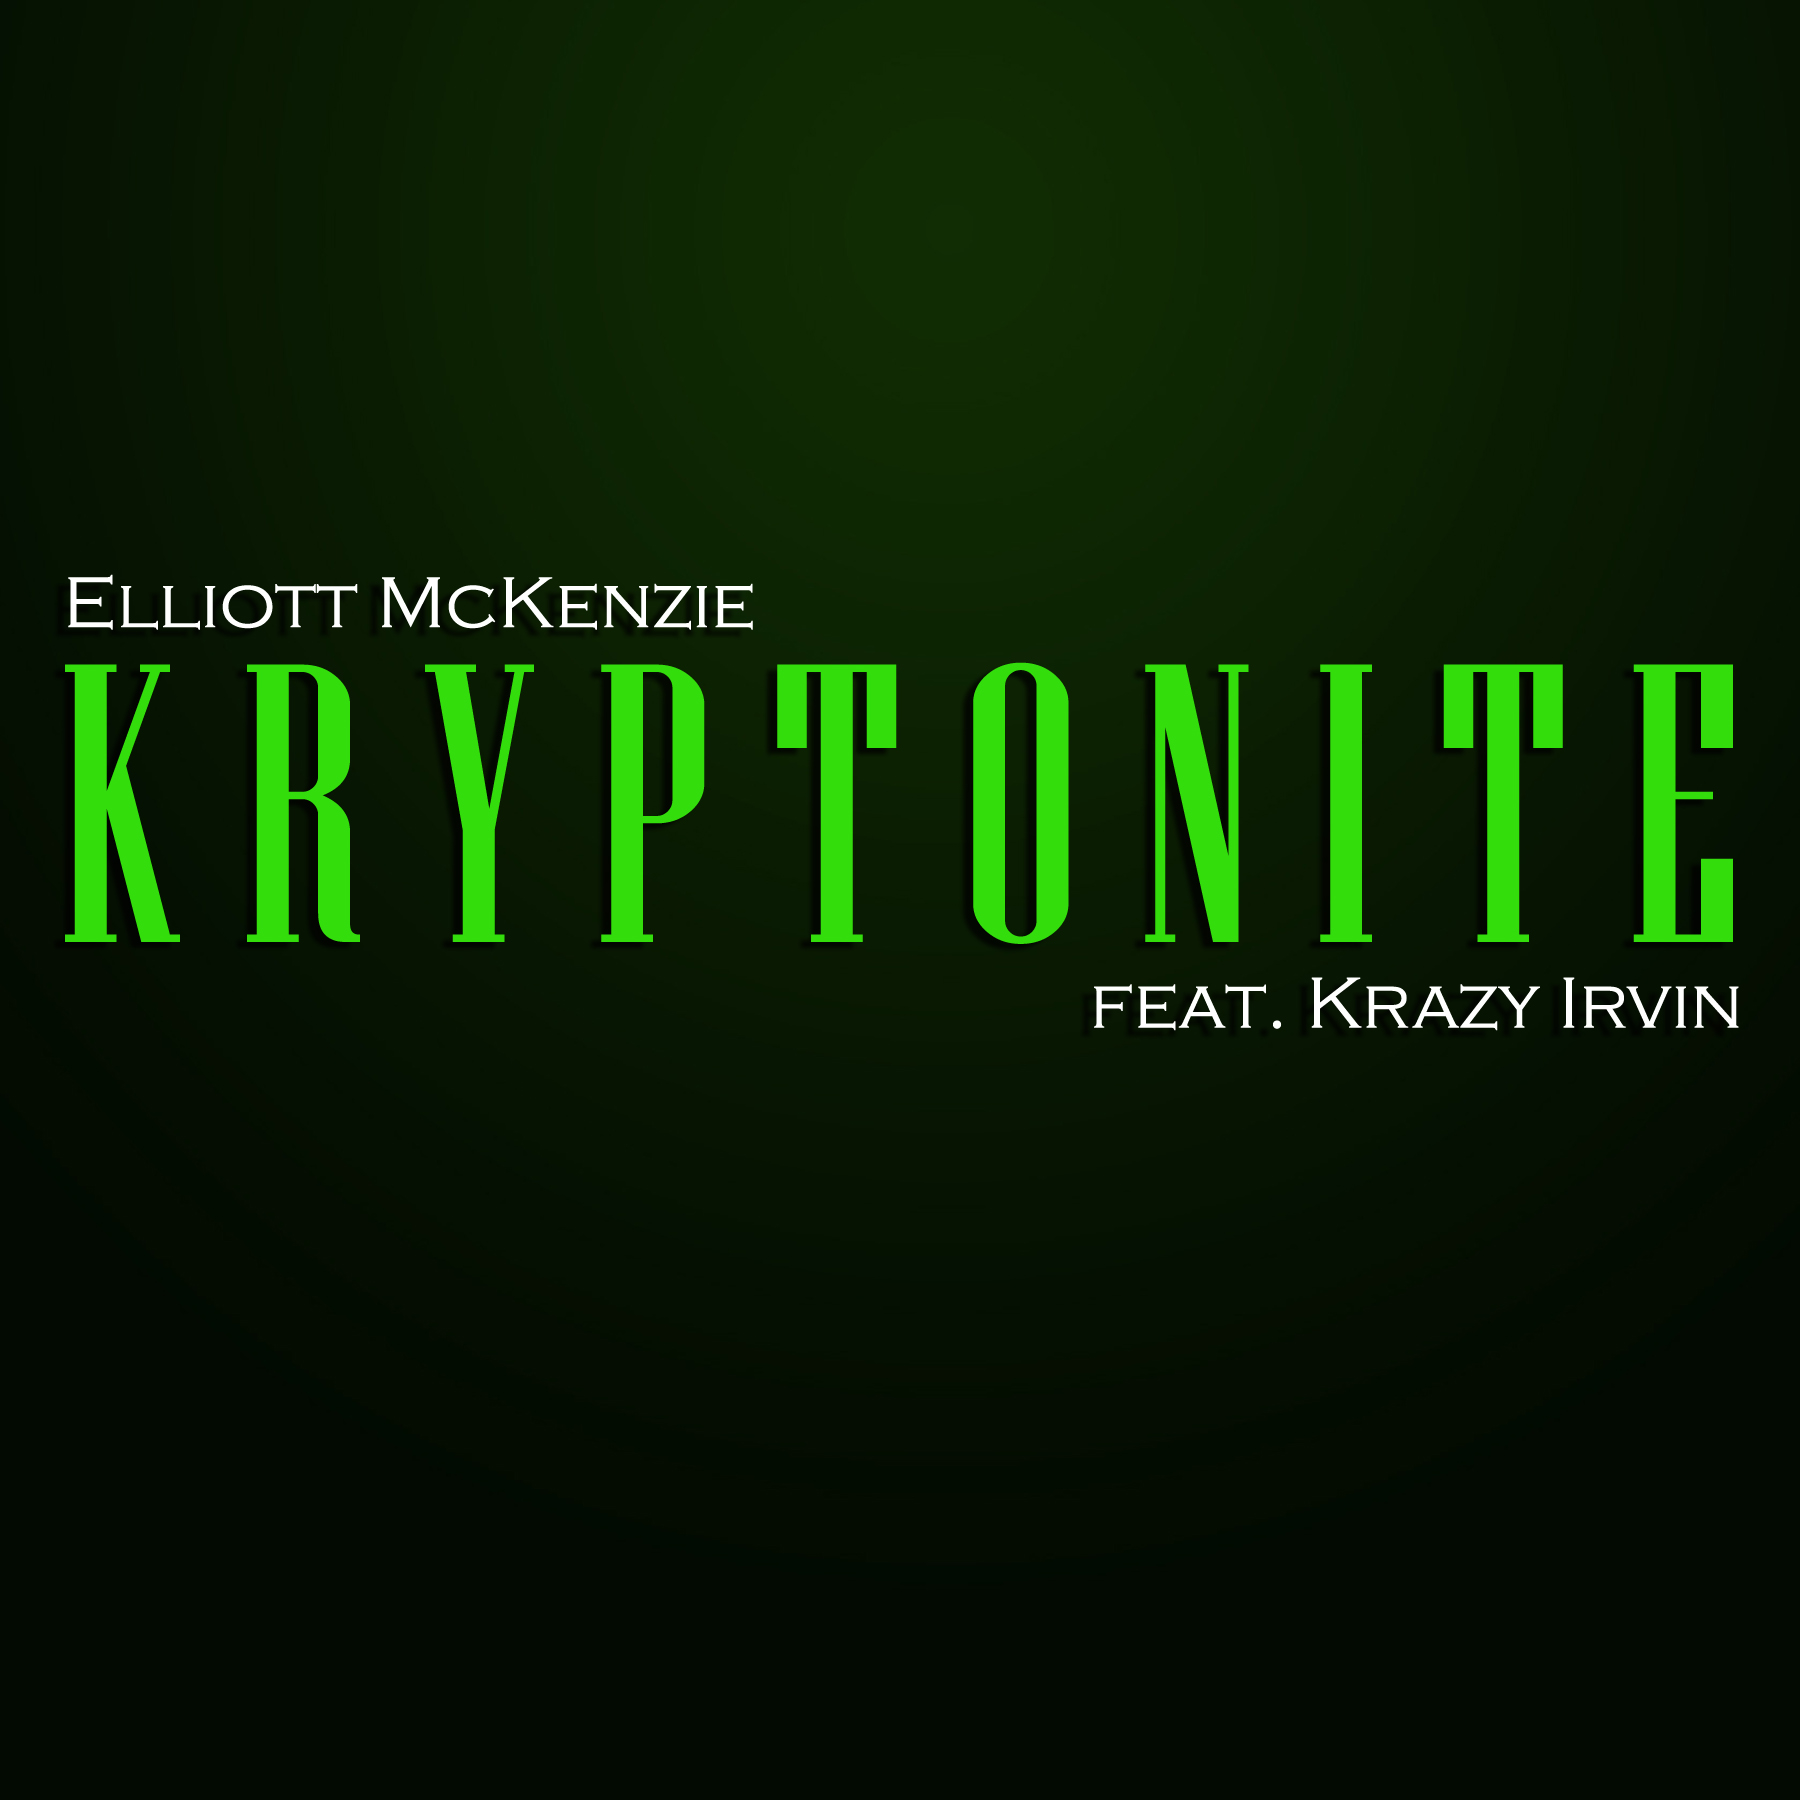 "KRYPTONITE - Click below to purchase Elliott's single ""Kryptonite"" on itunes! It is also available in the Google Play Store, on Spotify, and everywhere digital music is sold!"